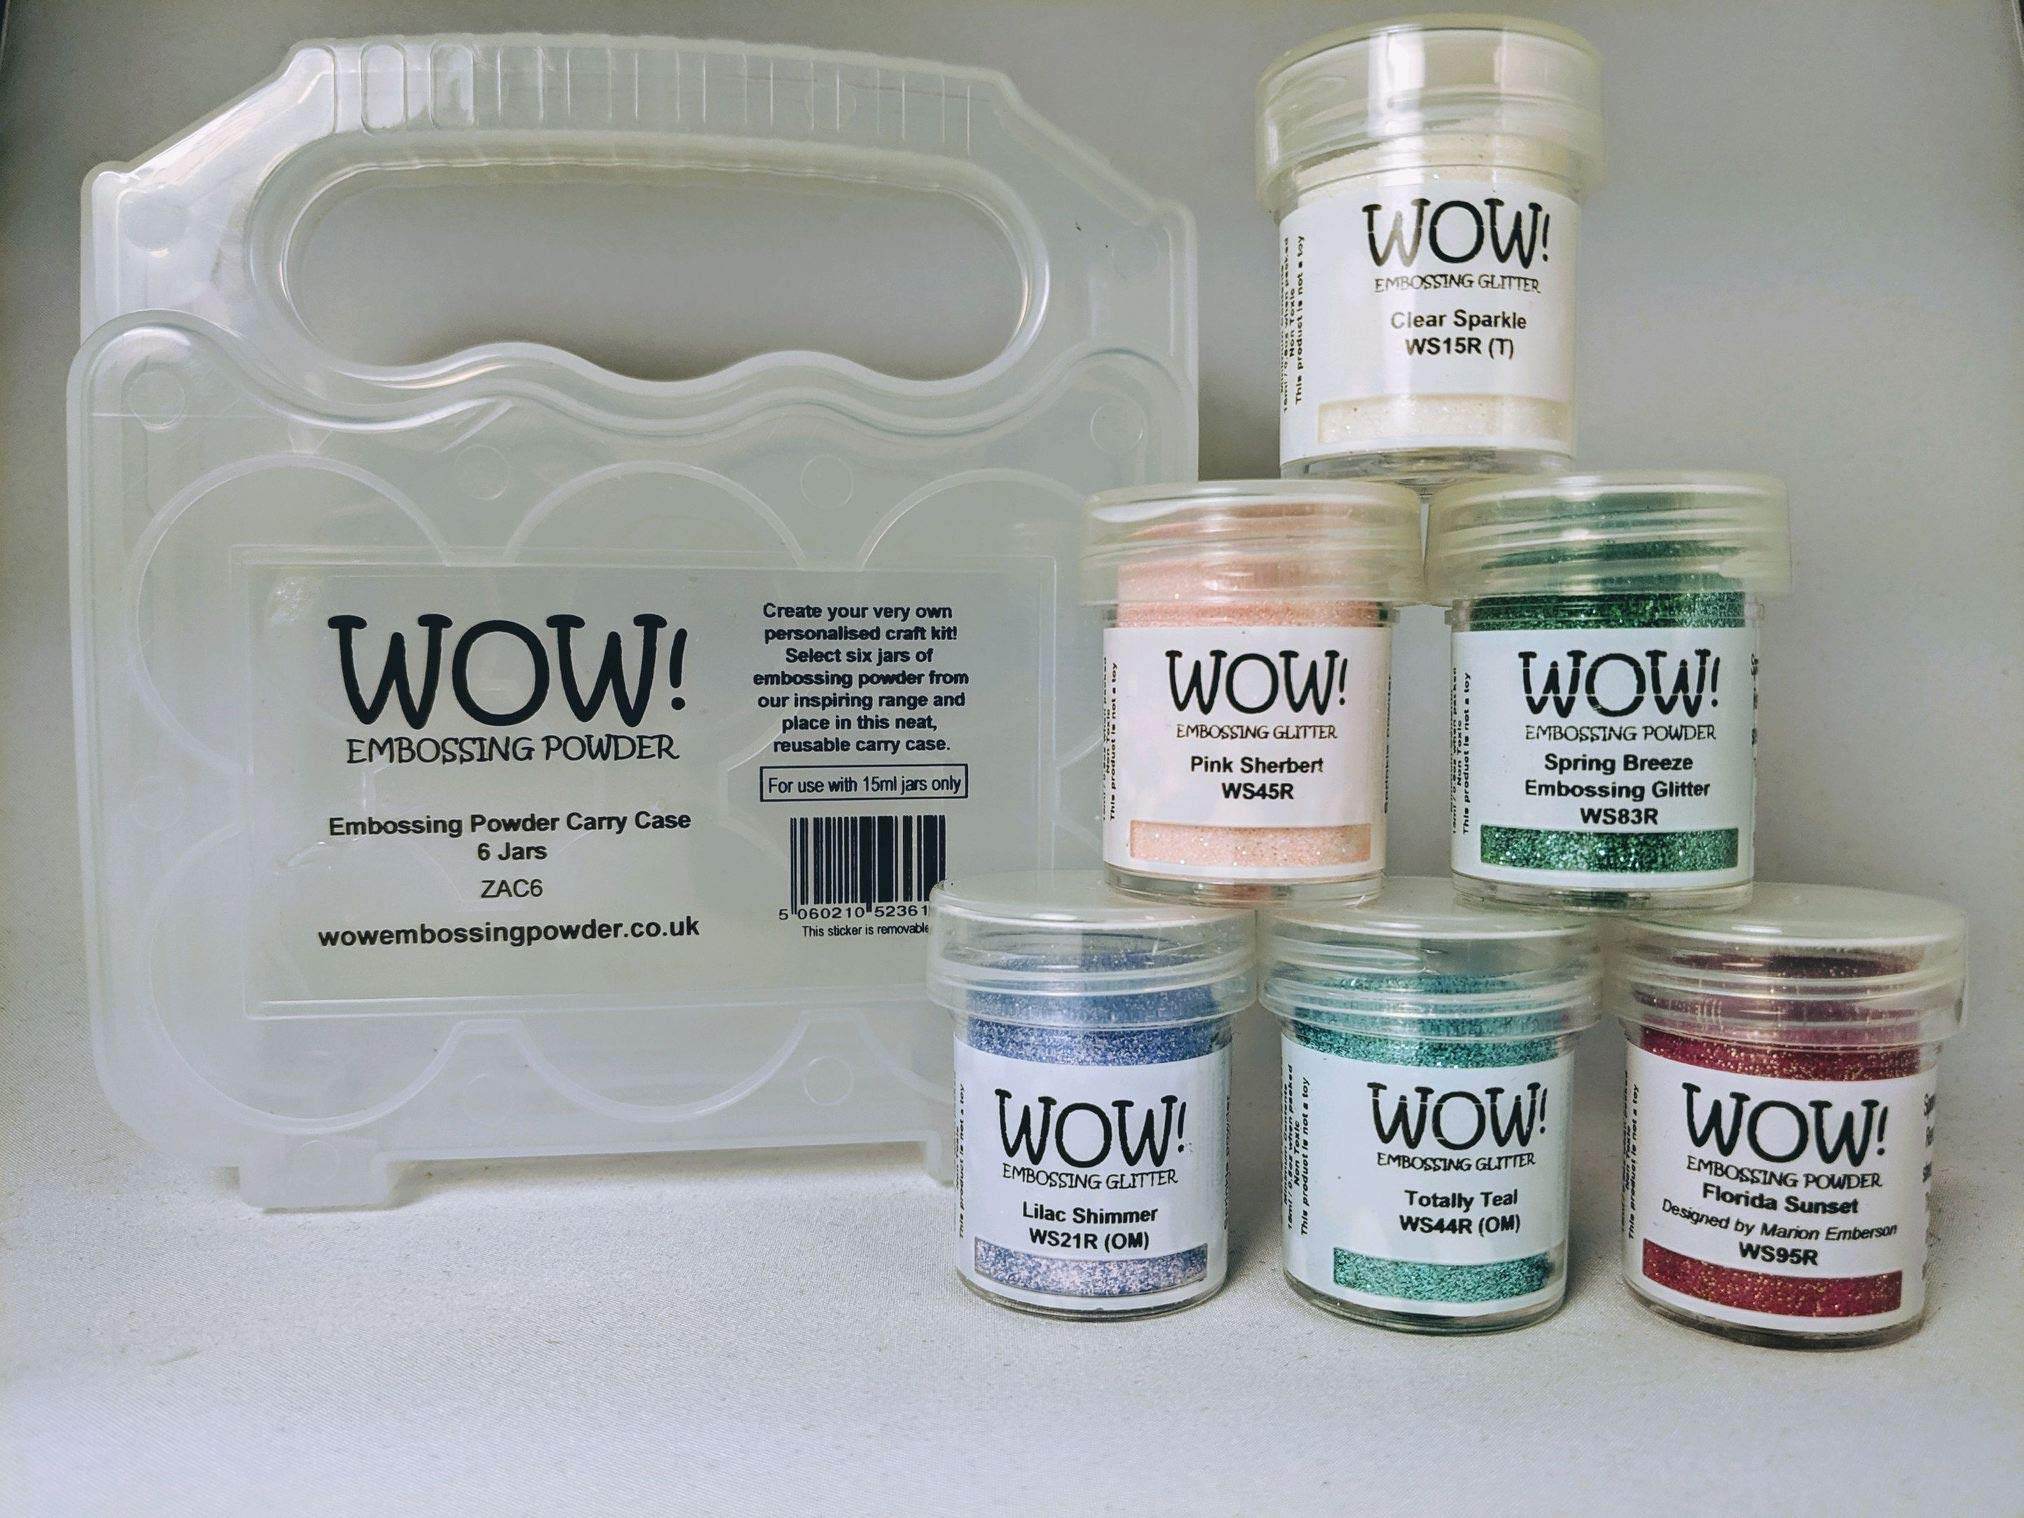 Wow! Embossing Powder and Glitter Sparkle in Pastel Colors 6 - Pack Kit and Clear Carrying Case - Bundle 7 Items